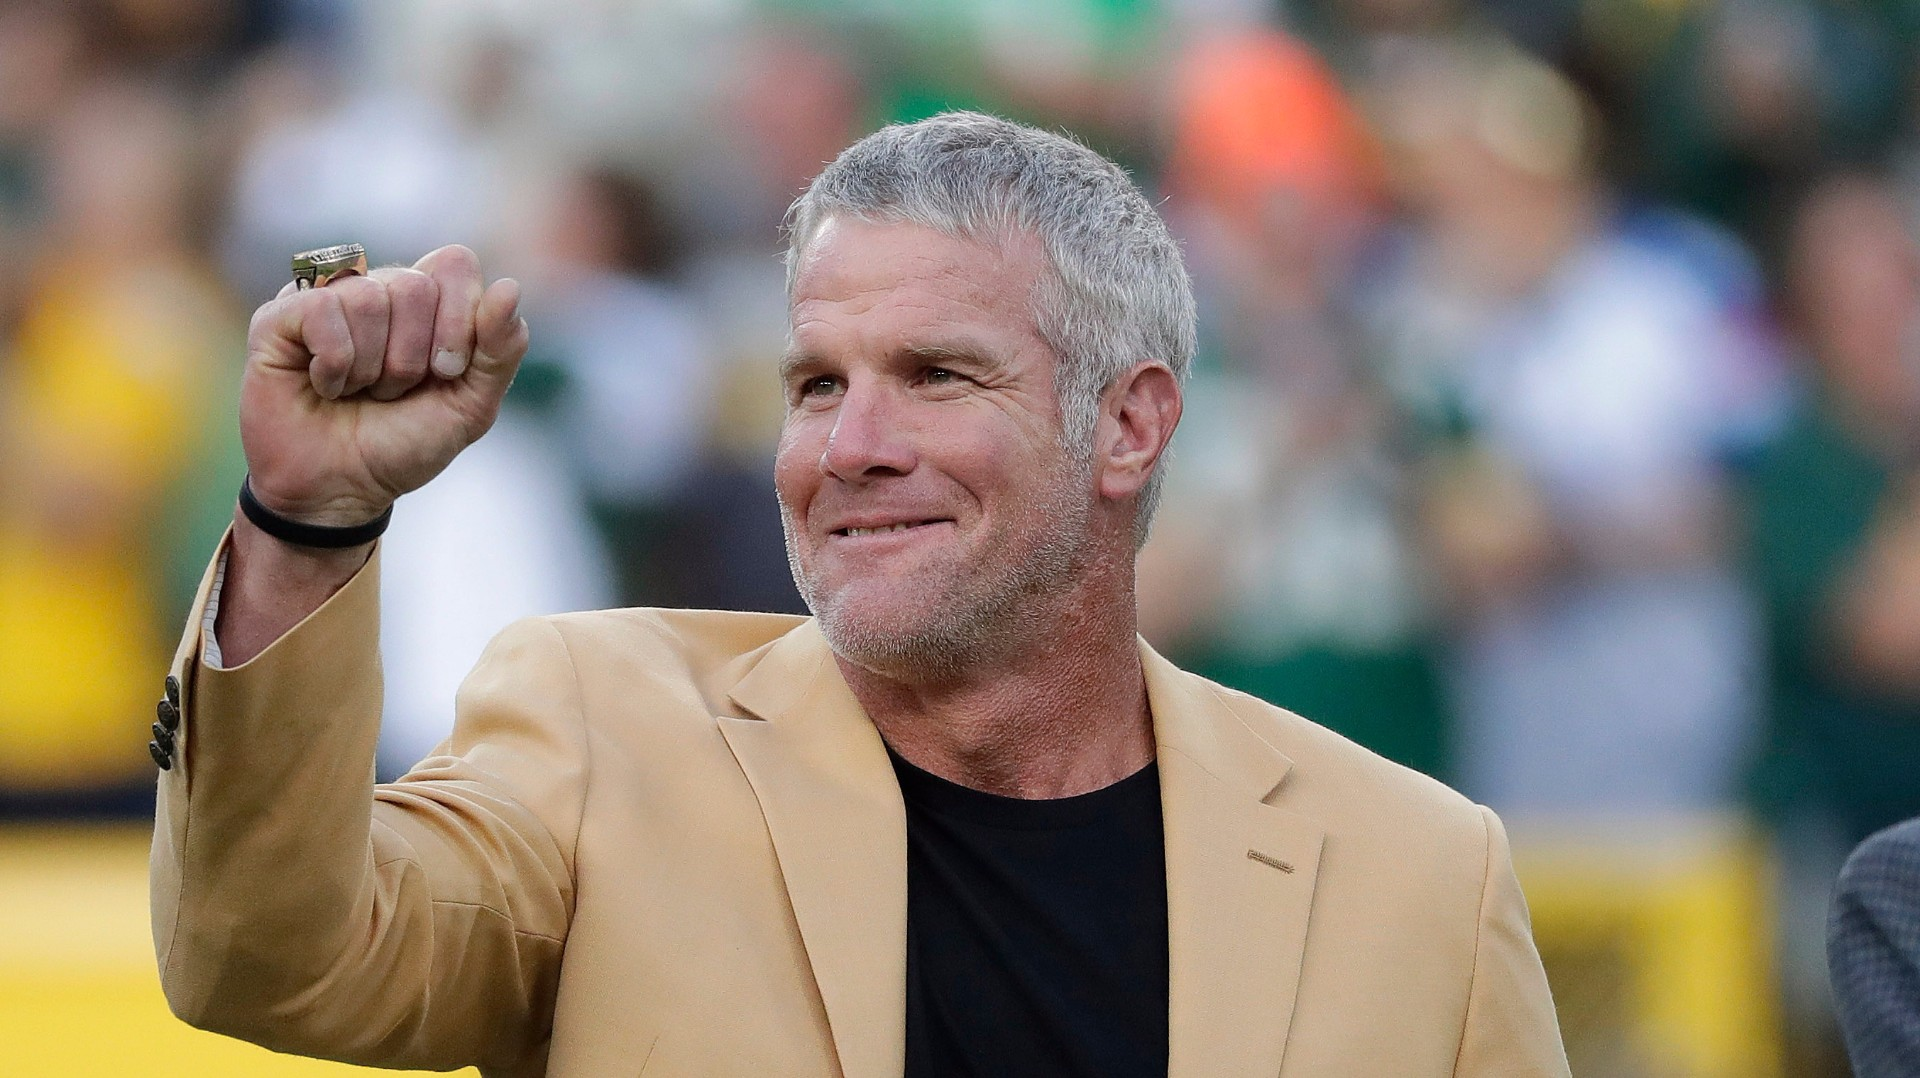 brett favre - photo #24